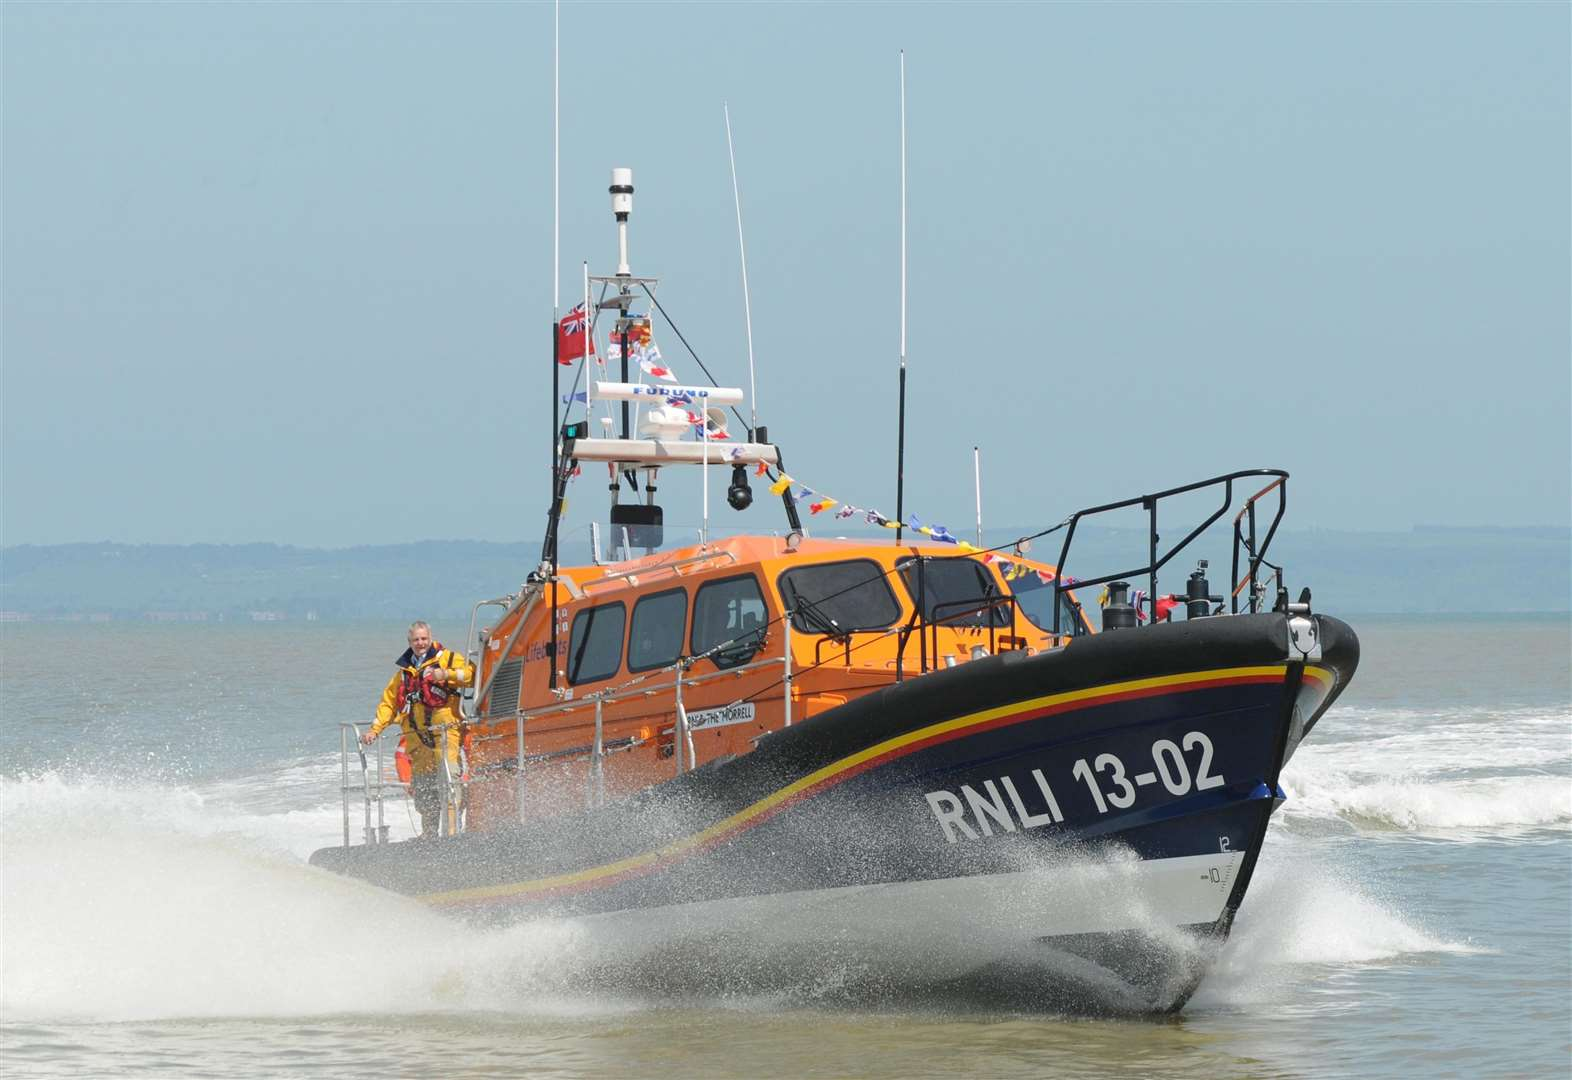 Sea rescue after yacht and ship crash